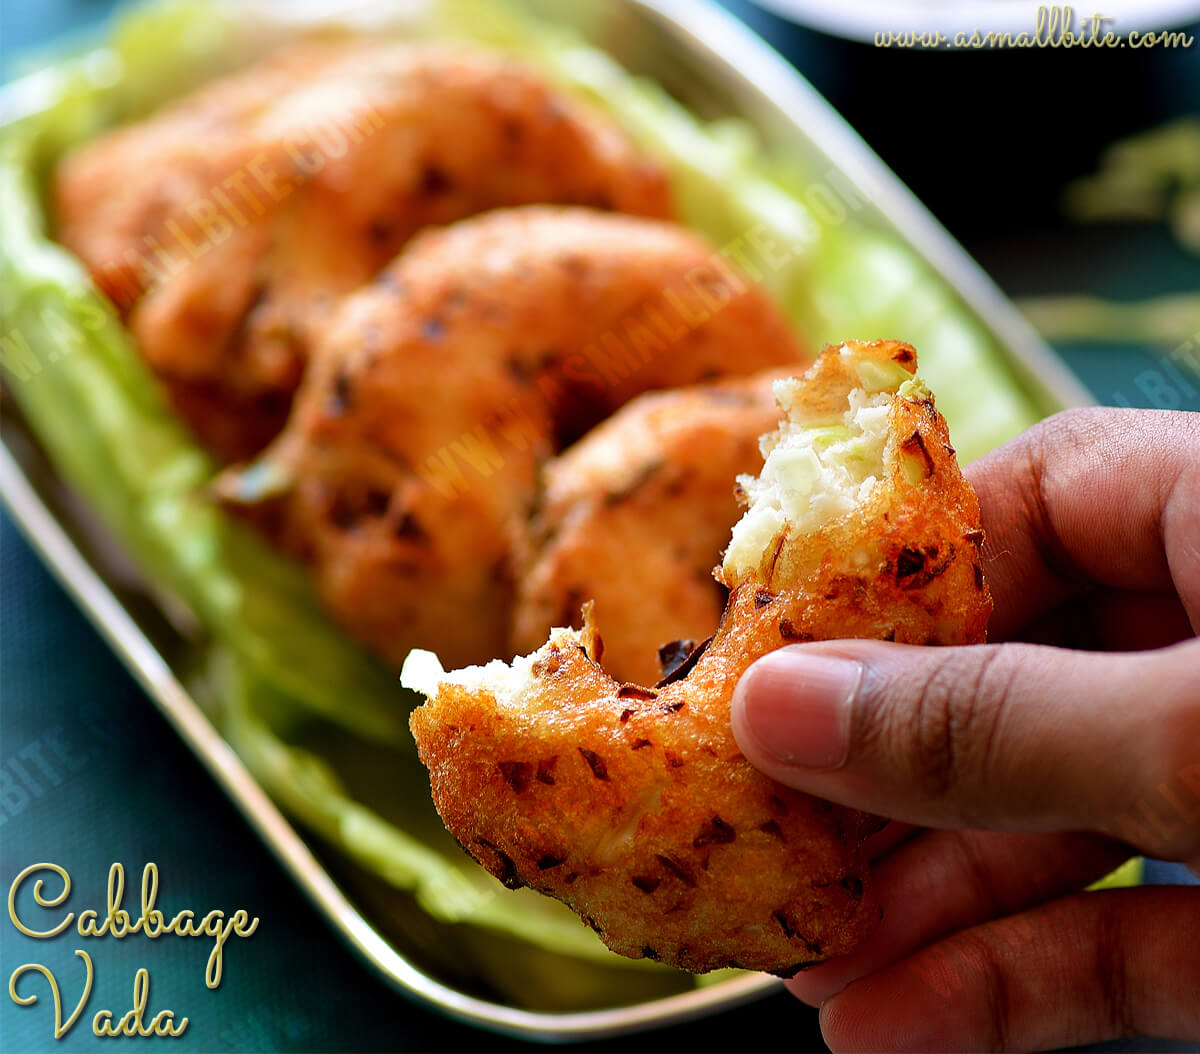 Cabbage Vada Recipe